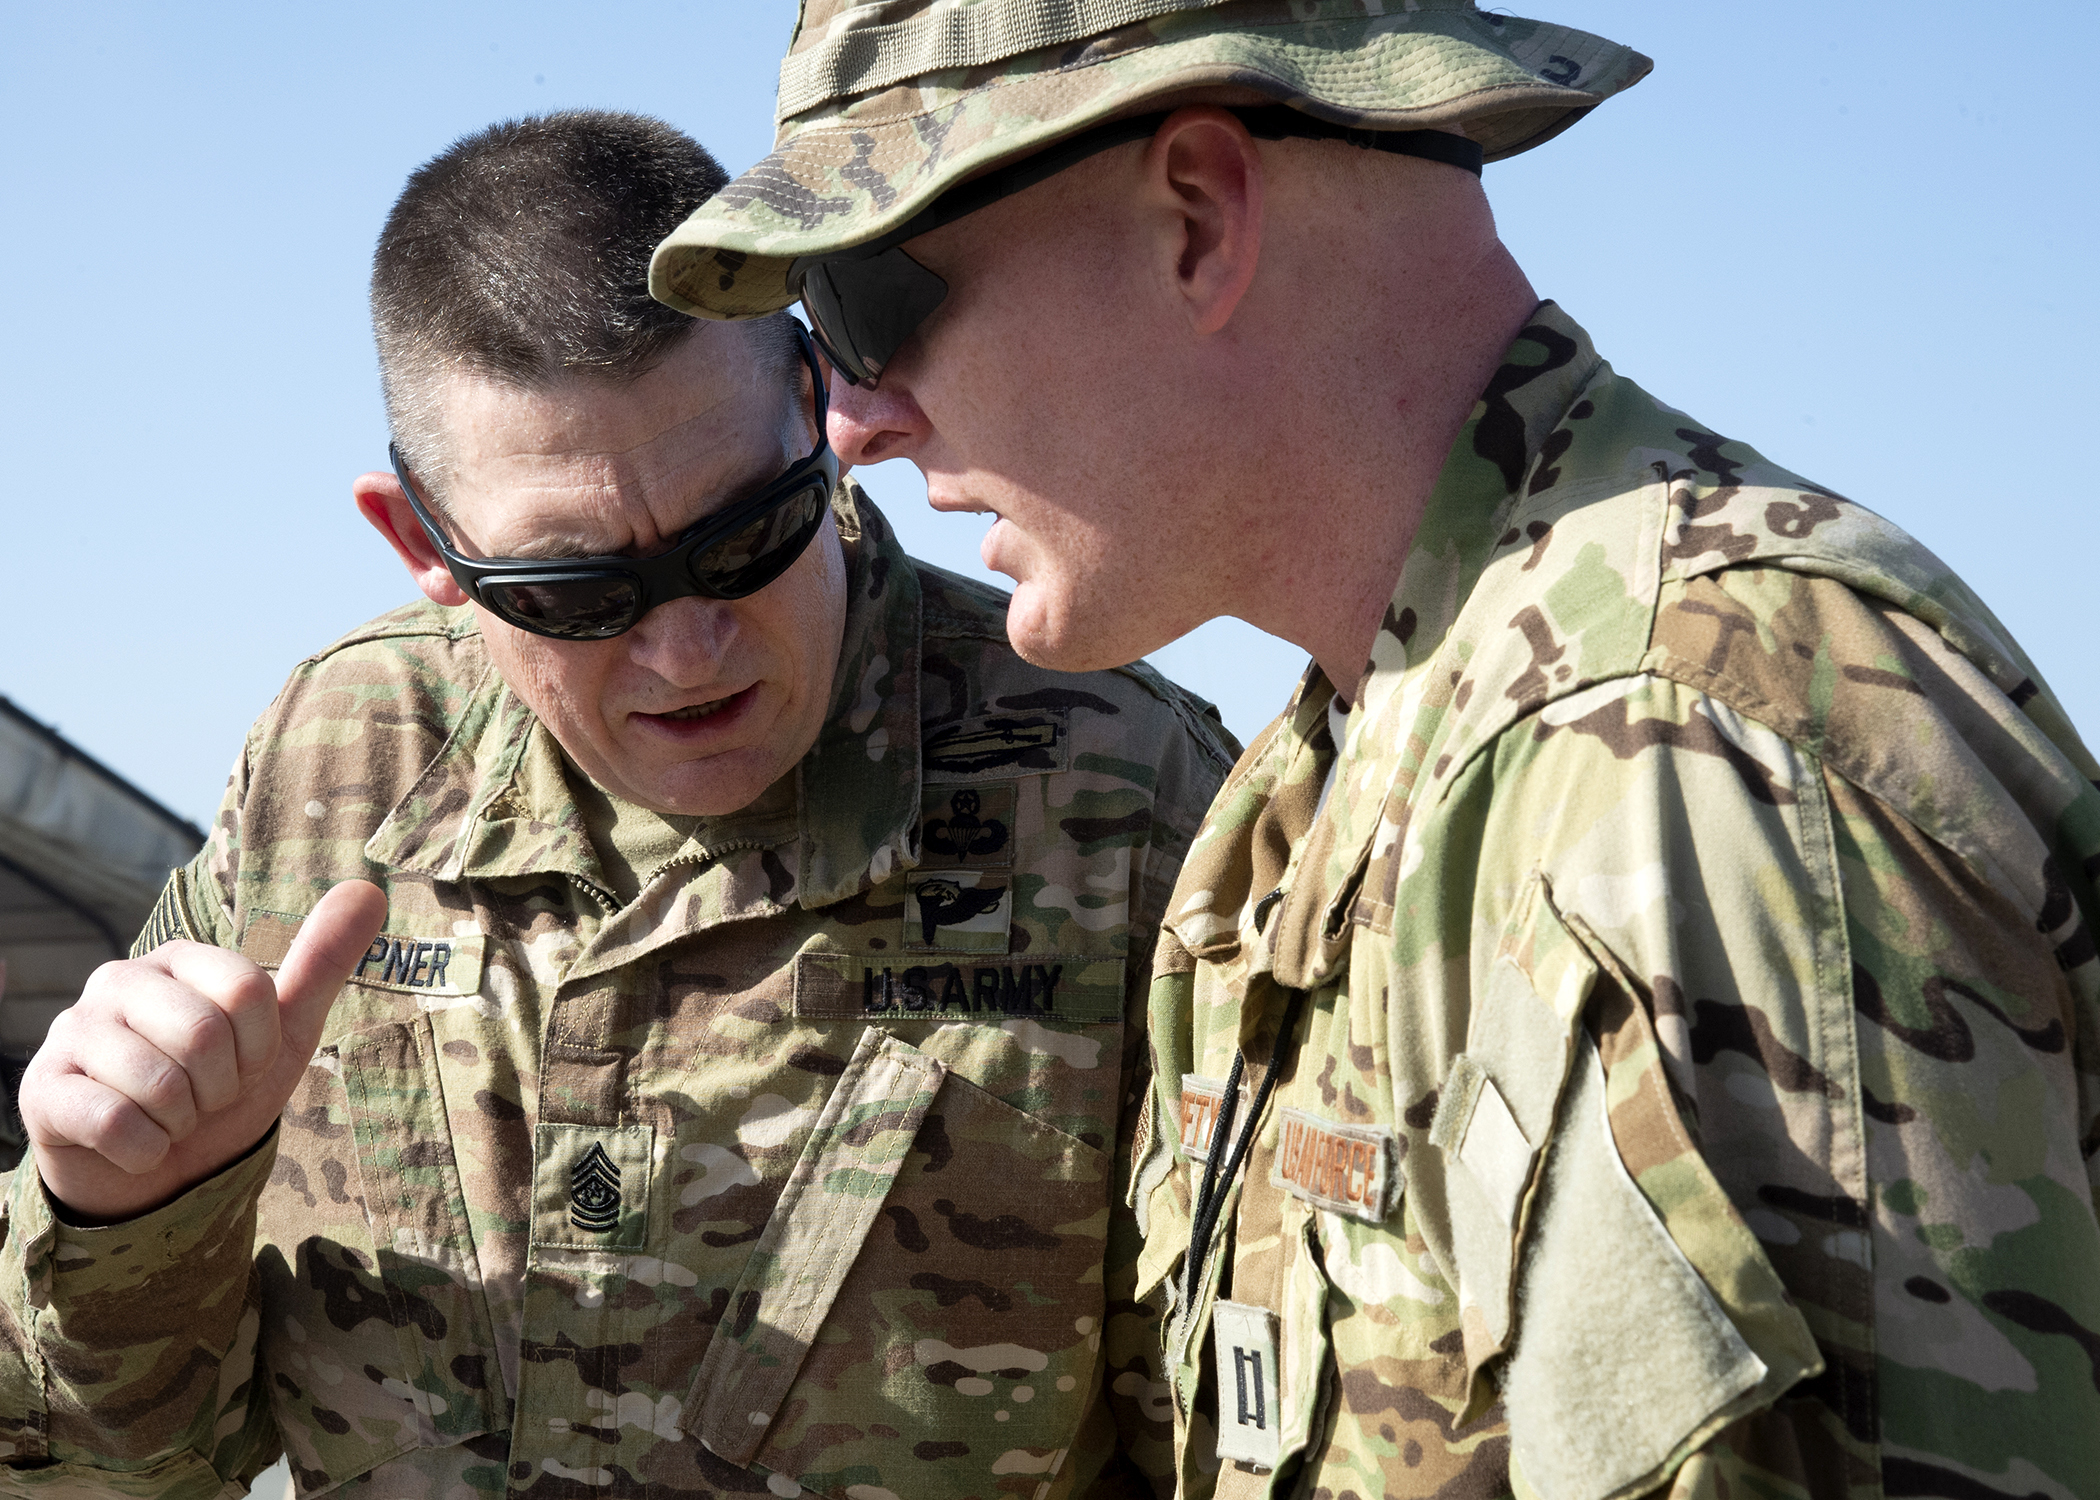 U.S. Army Command Sgt. Maj. Christopher Kepner, command sergeant major of the National Guard Bureau, speaks to U.S. Air Force Capt. Michael Hefty, director of operations, 12th Expeditionary Special Operations Squadron, on the flight line at Chabelley Airfield, Djibouti, Jan. 17, 2019. Kepner visited National Guardsmen deployed to Combined Joint Task Force-Horn of Africa Jan. 15-19, 2019. (U.S. Air Force photo by Master Sgt. Amanda Currier)